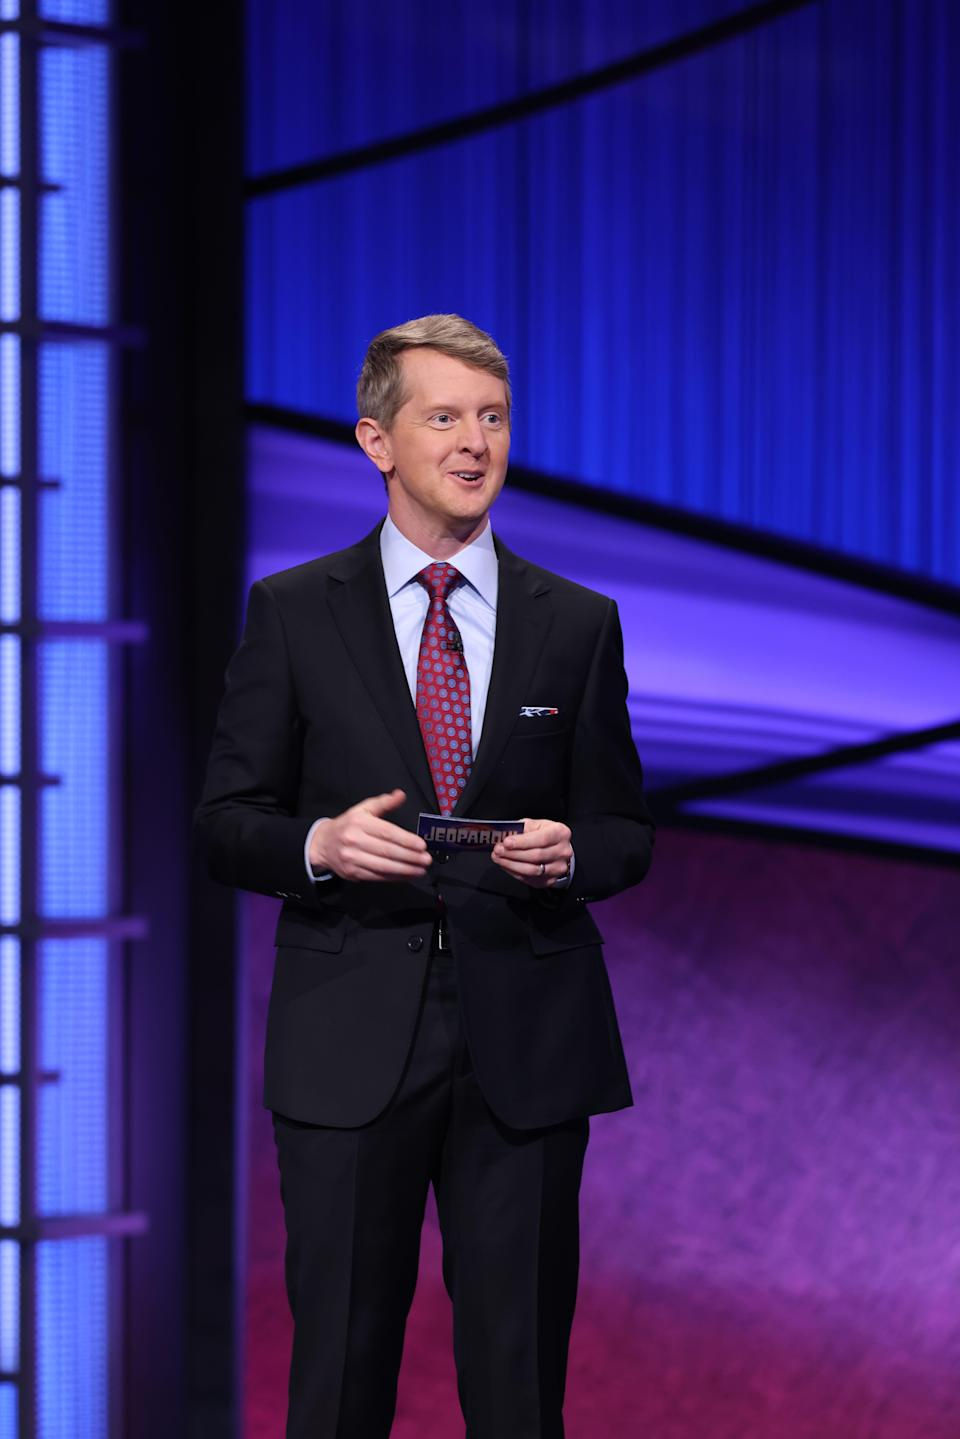 """""""Jeopardy!"""" Greatest of All Time champion Ken Jennings was the first guest host, for a six-week stint that began Jan. 11, following Alex Trebek's final episode."""